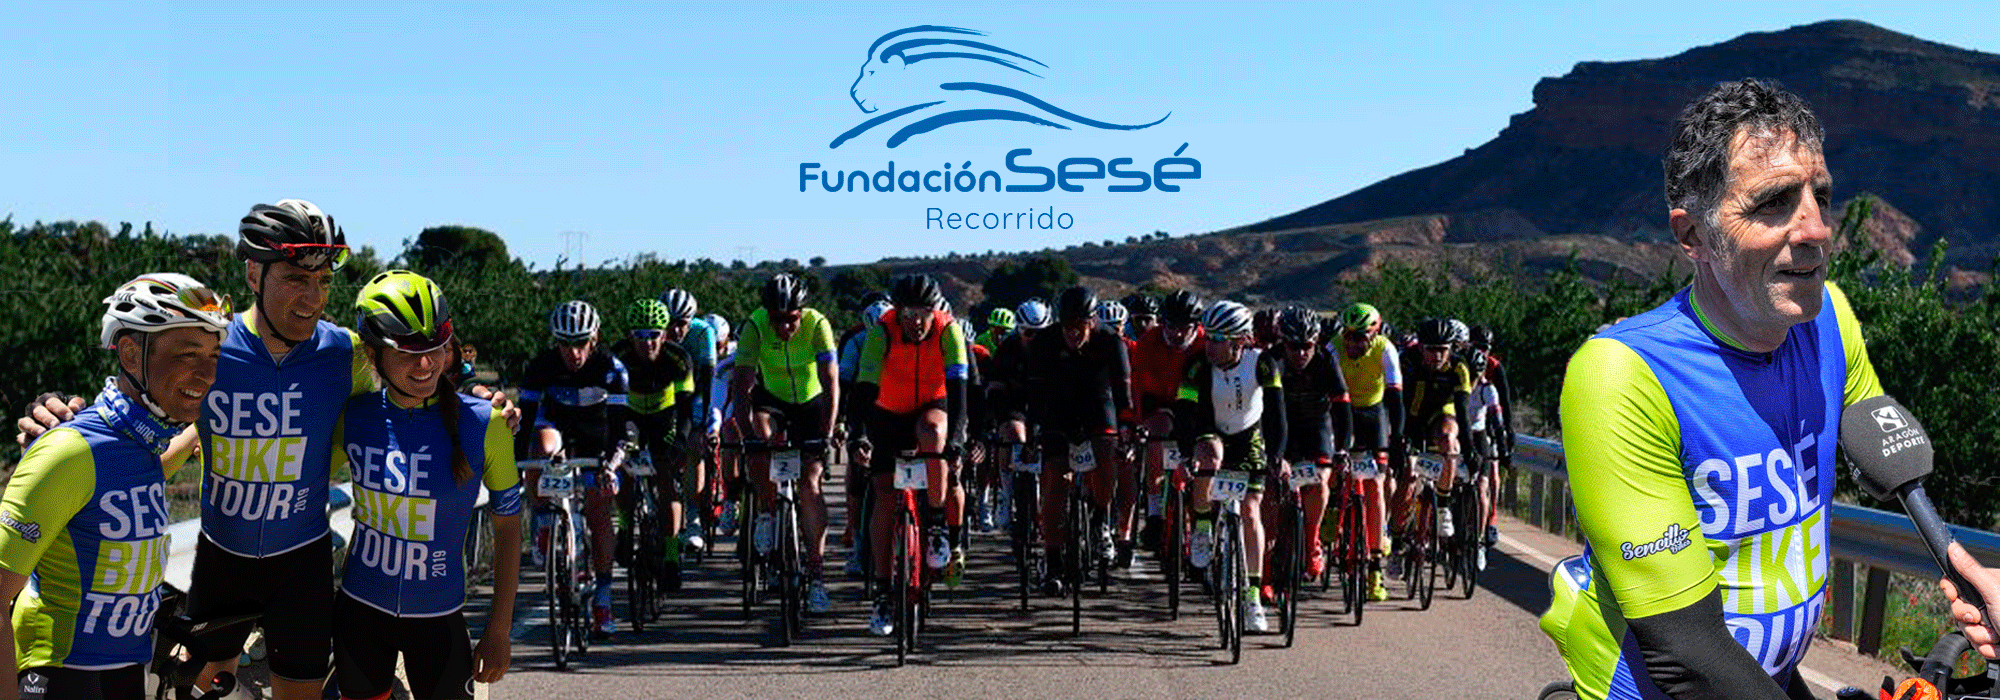 Recorrido-sese-bike-tour